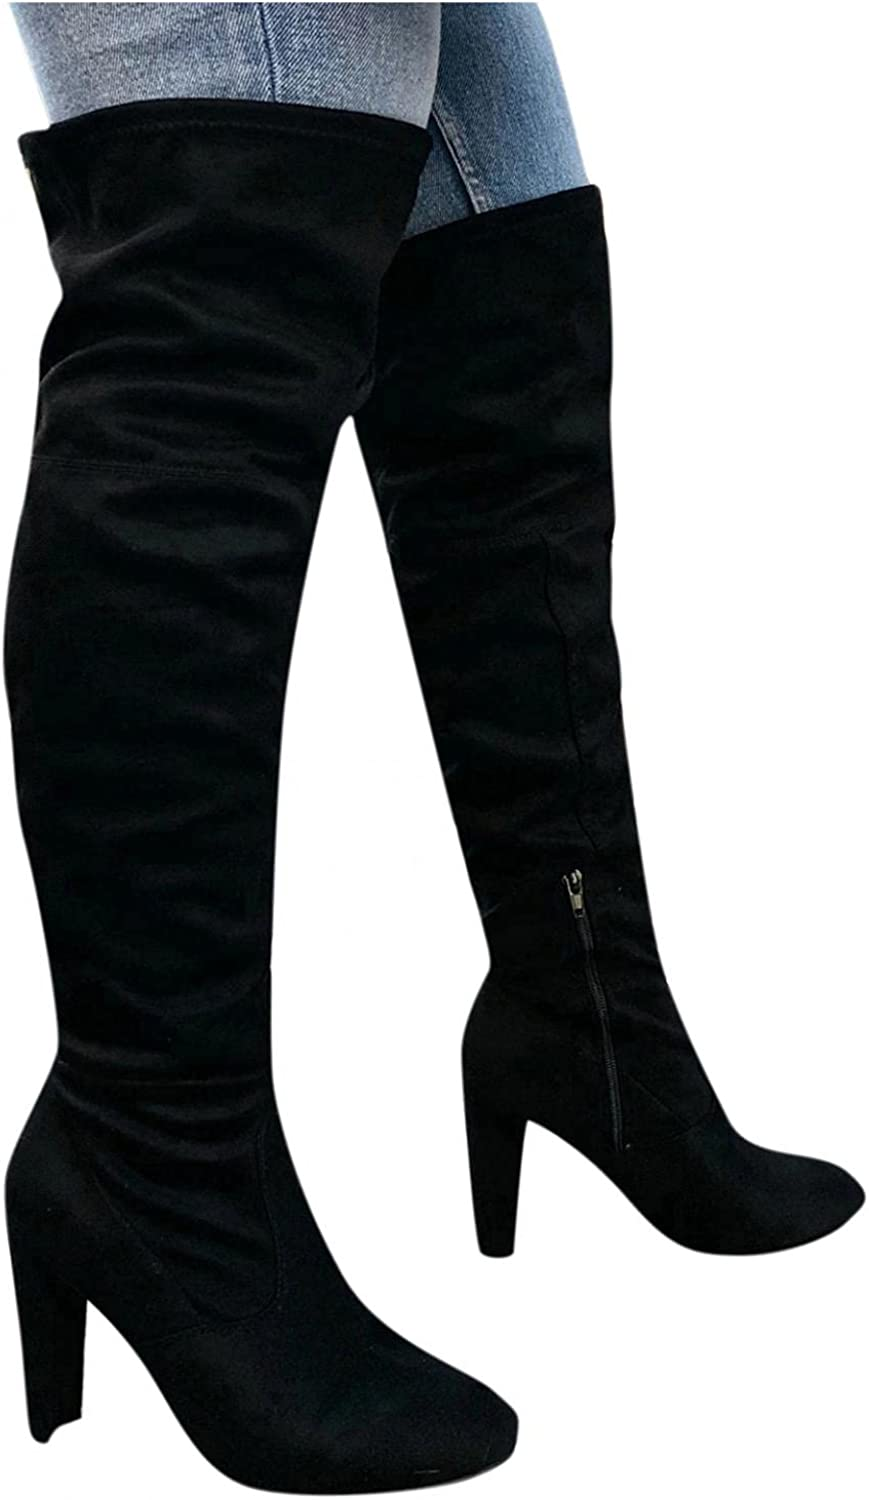 Eduavar Boots for Women, Womens Winter Fashion Lace Up Over Knee Long Thigh High Boots Suede Comfort Chunky Heels Shoes